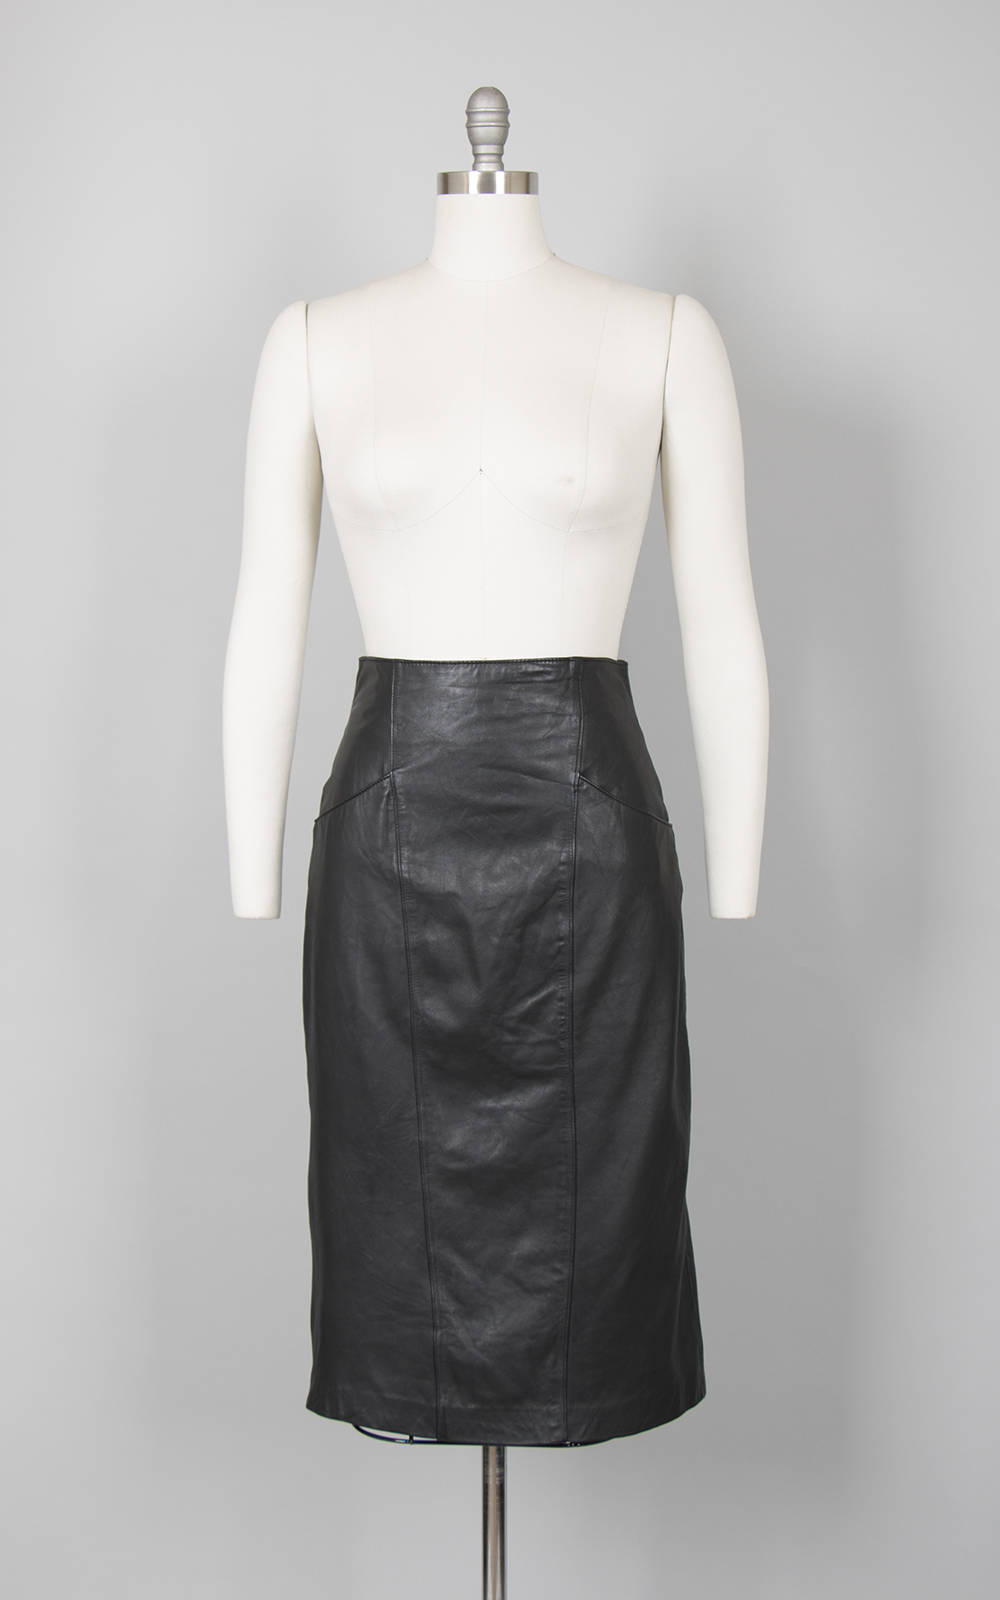 Vintage 1980s Skirt | 80s Black Leather Pencil Skirt Buttery Soft Leather Wiggle w/ High Back Slit & Pockets (small)